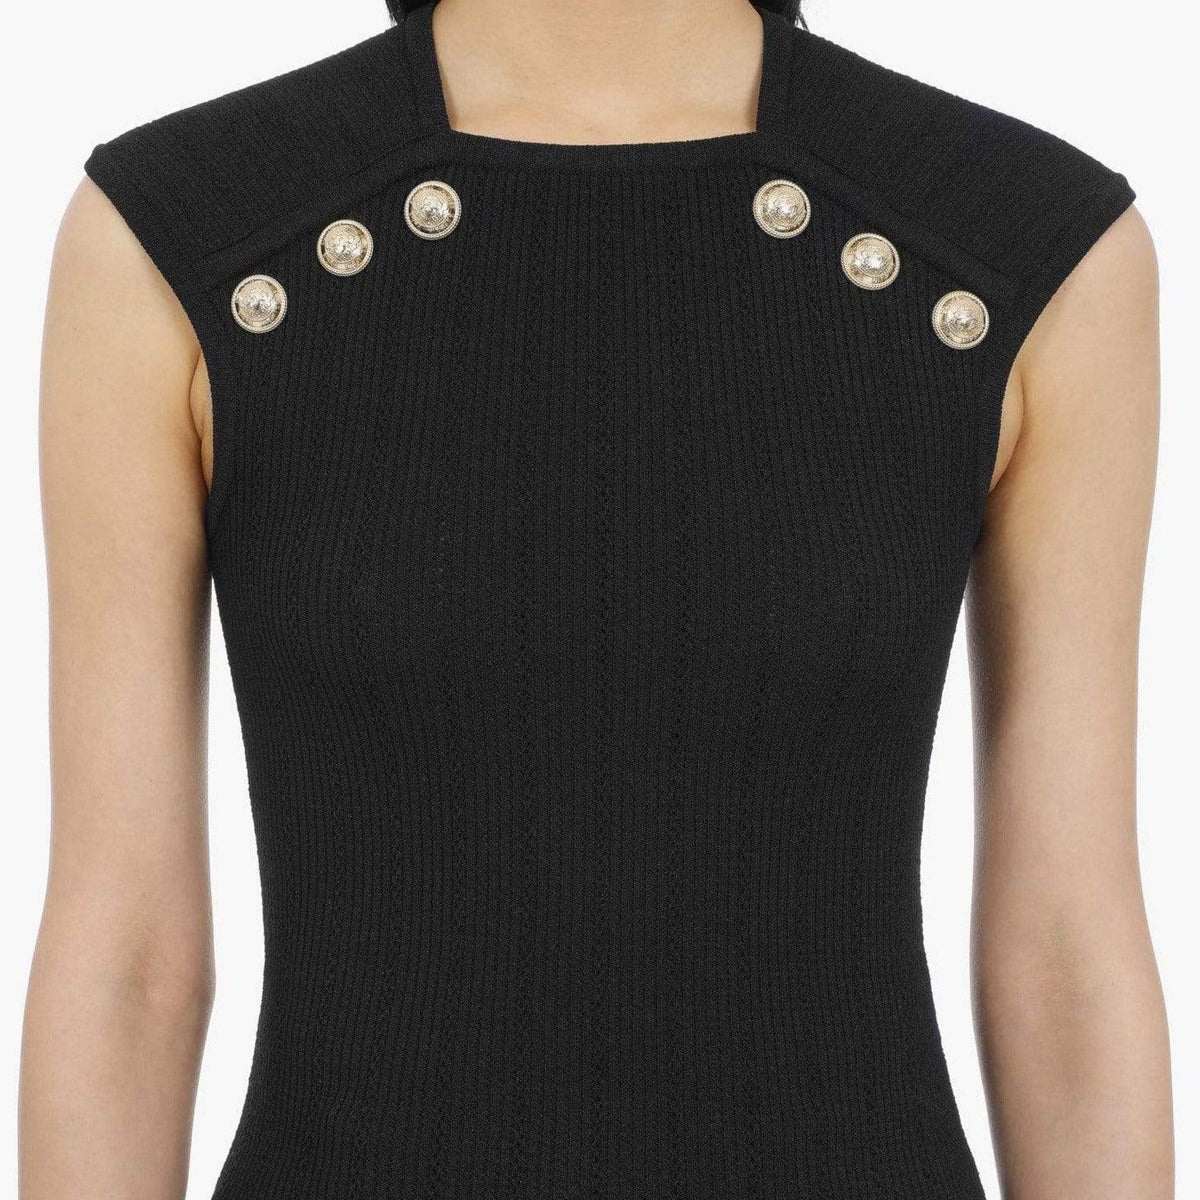 Balmain Knit Top With Gold-Tone Buttons